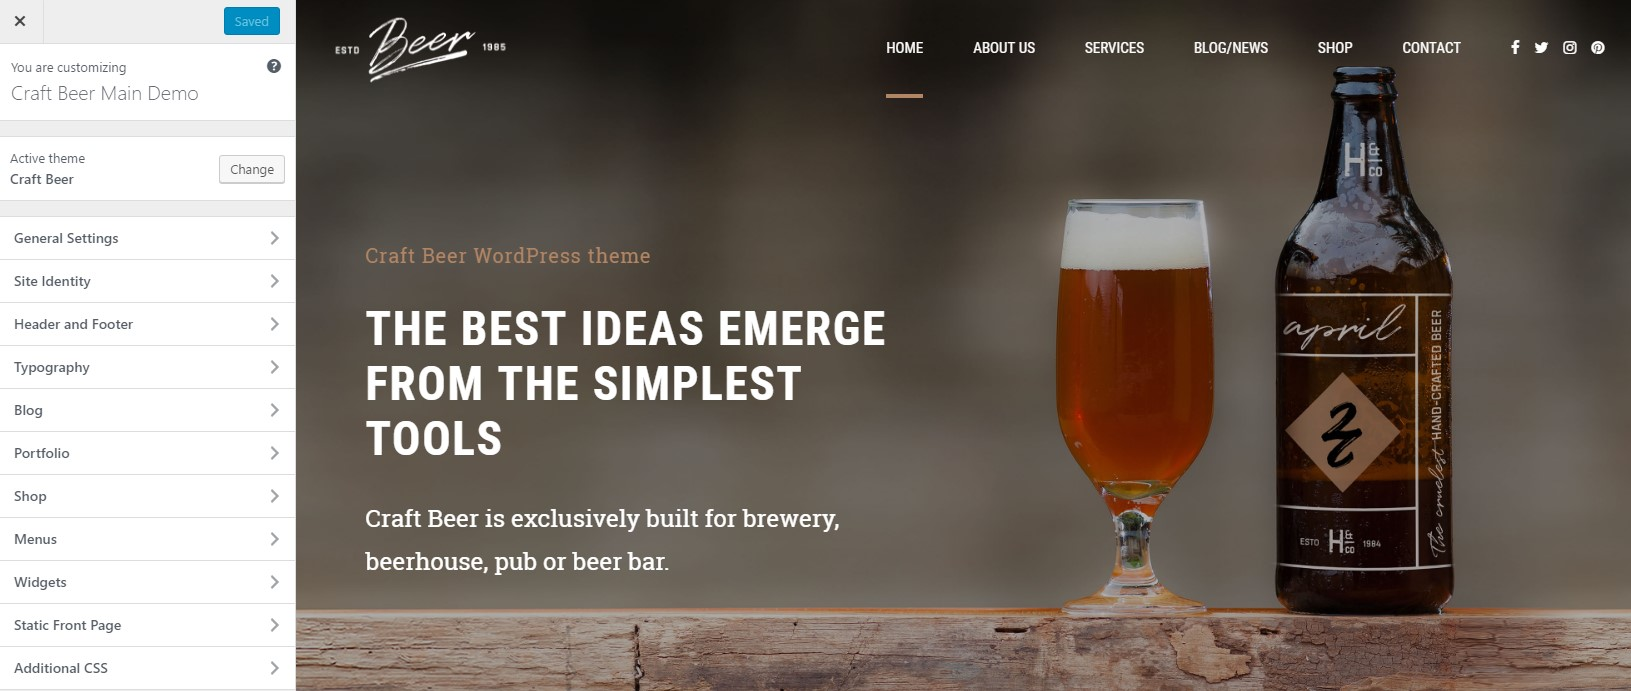 https://documentation.bold-themes.com/craft-beer/wp-content/uploads/sites/17/2017/06/customize-2.jpg